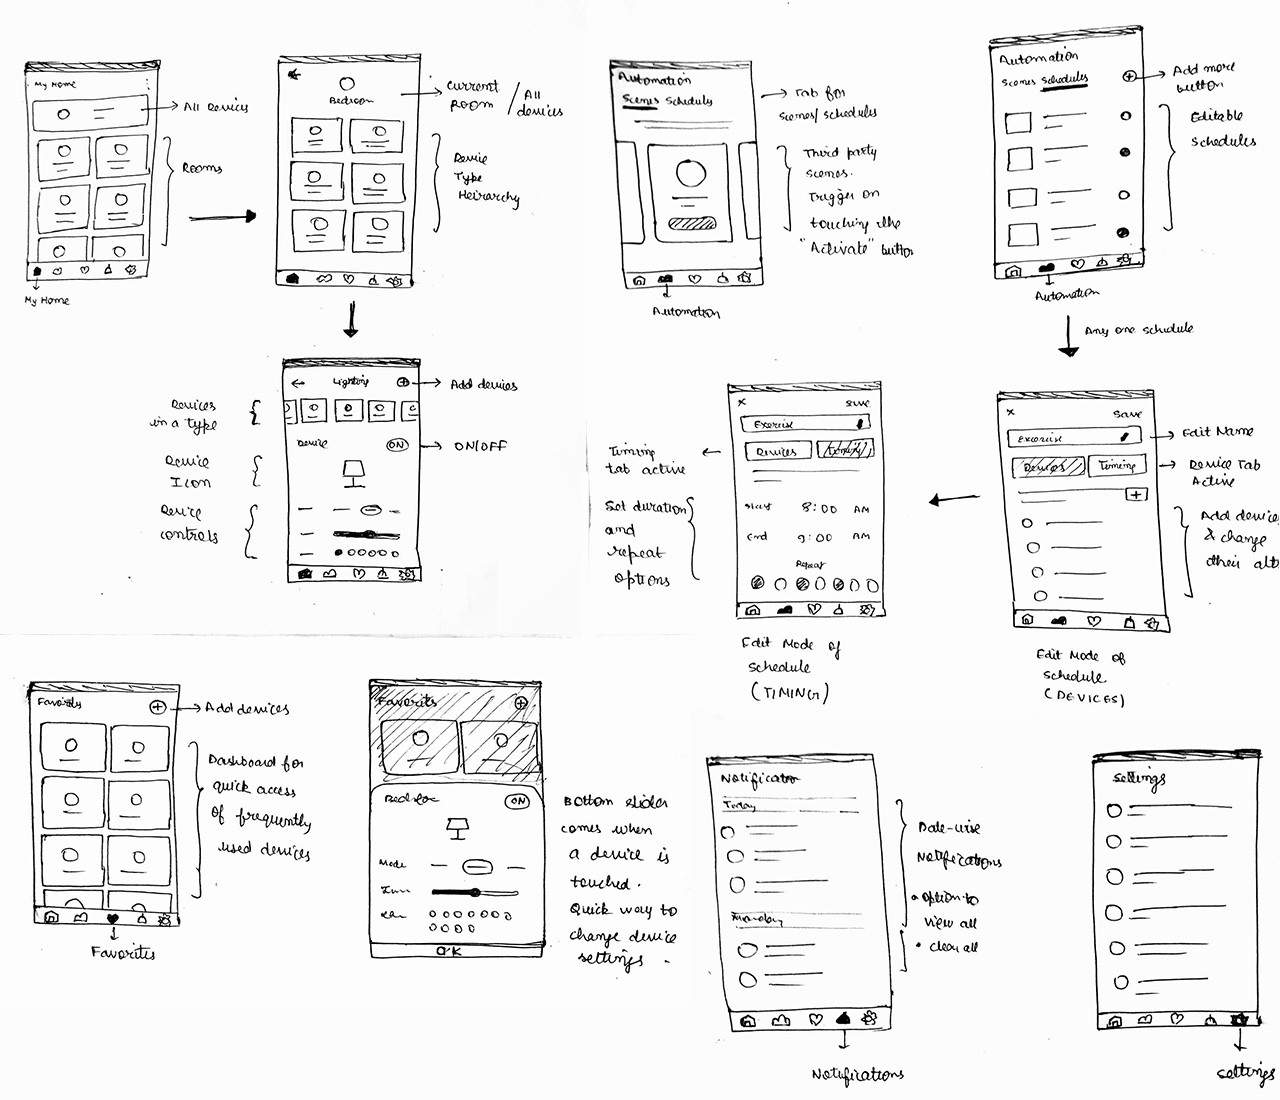 How I Designed Otomate Smart Home App Prototypr Building Automation Wiring Diagrams These Are The Initial Sketches That Prepared Before Designing High Fidelity Interfaces Paper And Pen Is A Convenient Way To Put Your Ideas Together